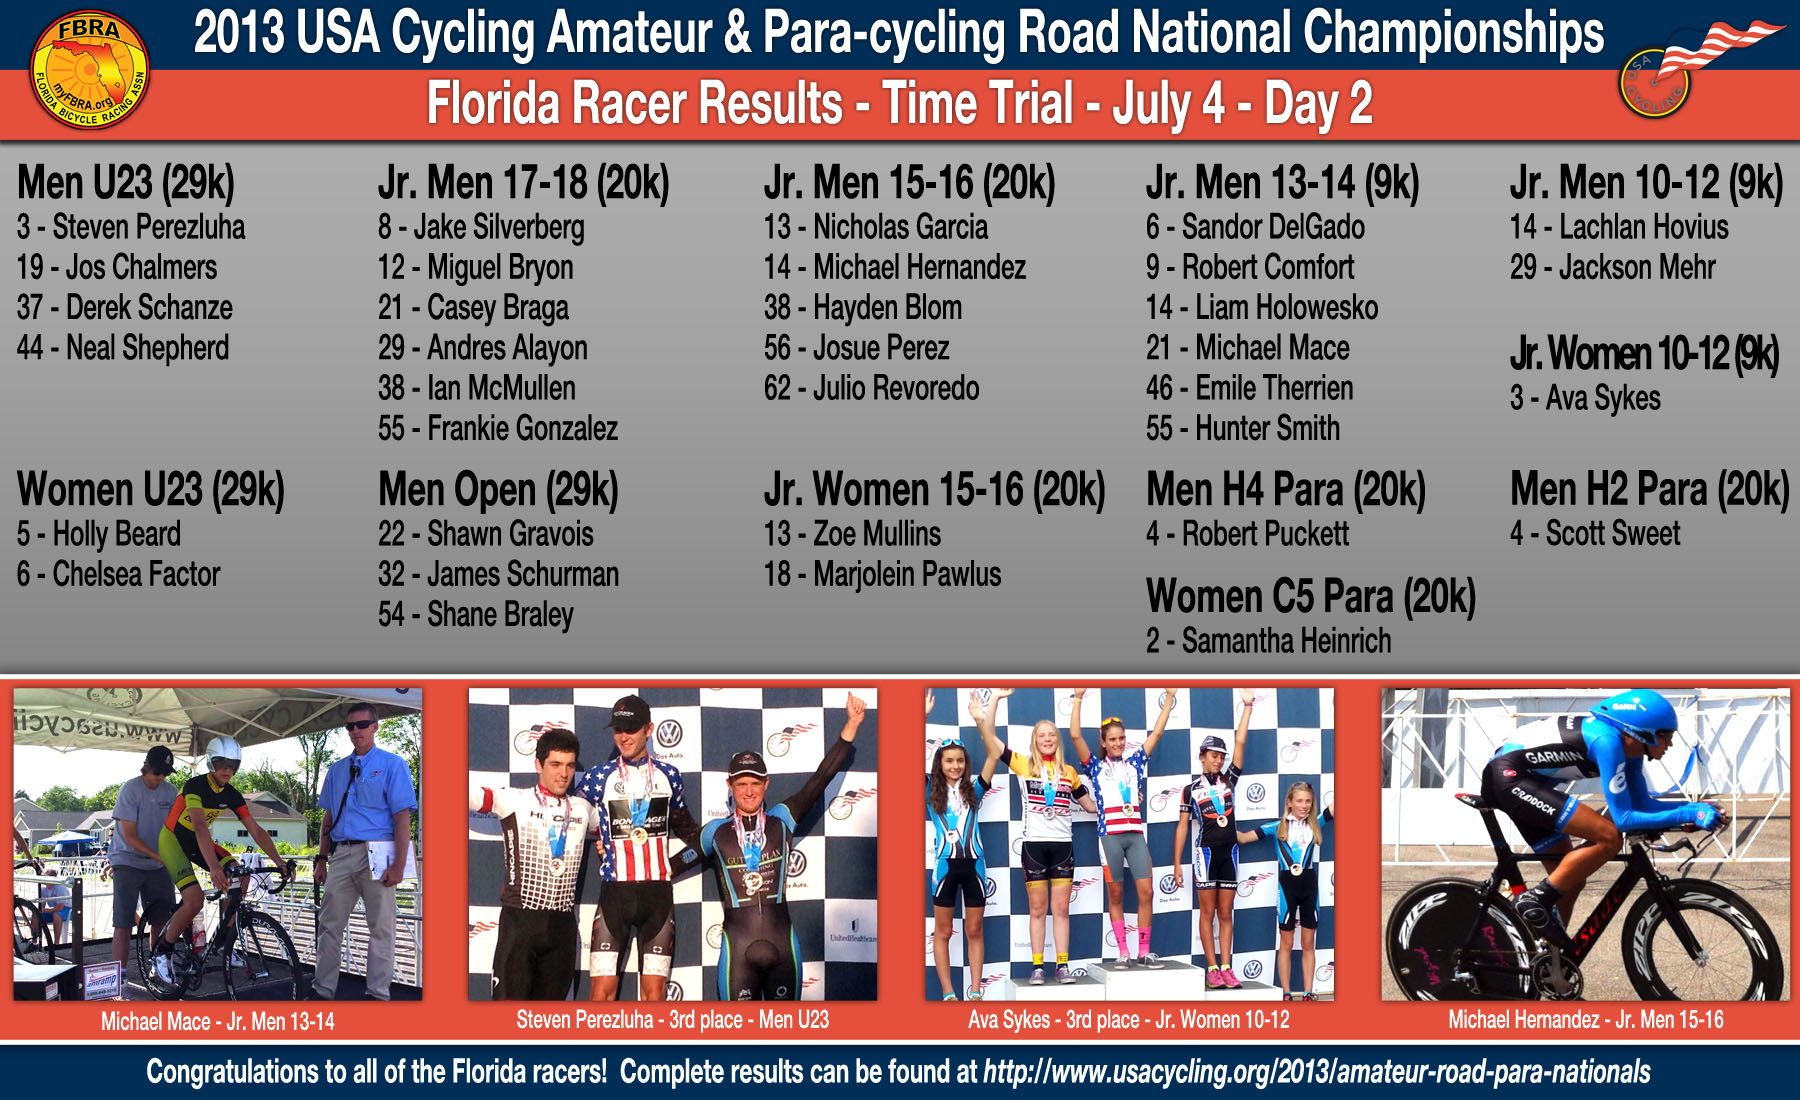 Florida Racer Results from the 2013 USA Cycling Amateur